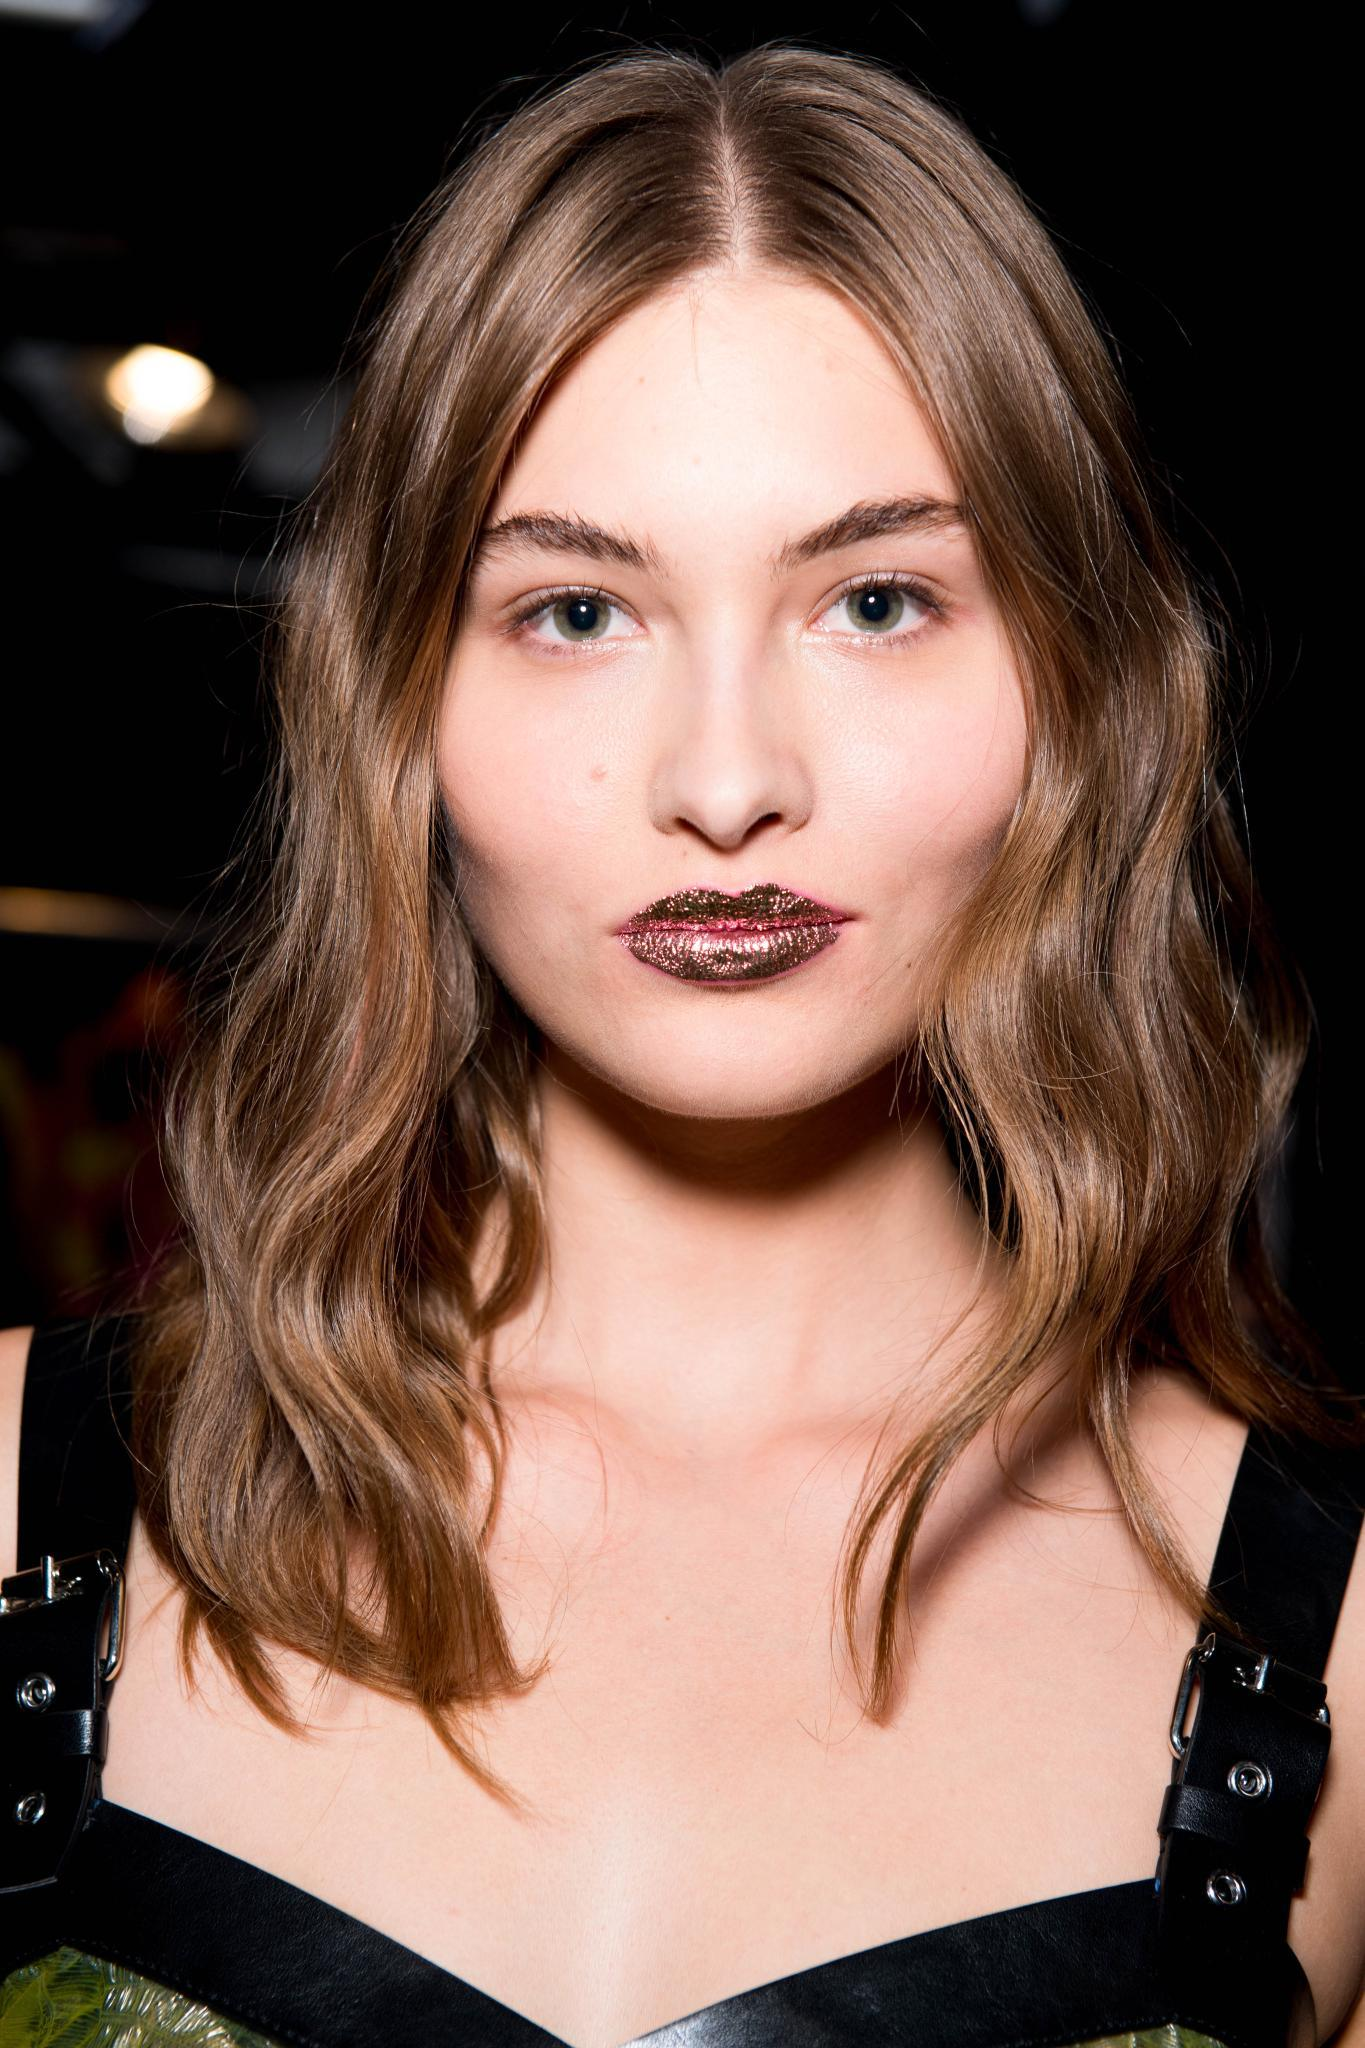 Hair glossing treatment: Woman with wavy shiny brown hair at Jermey Scott show with glitter lipstick